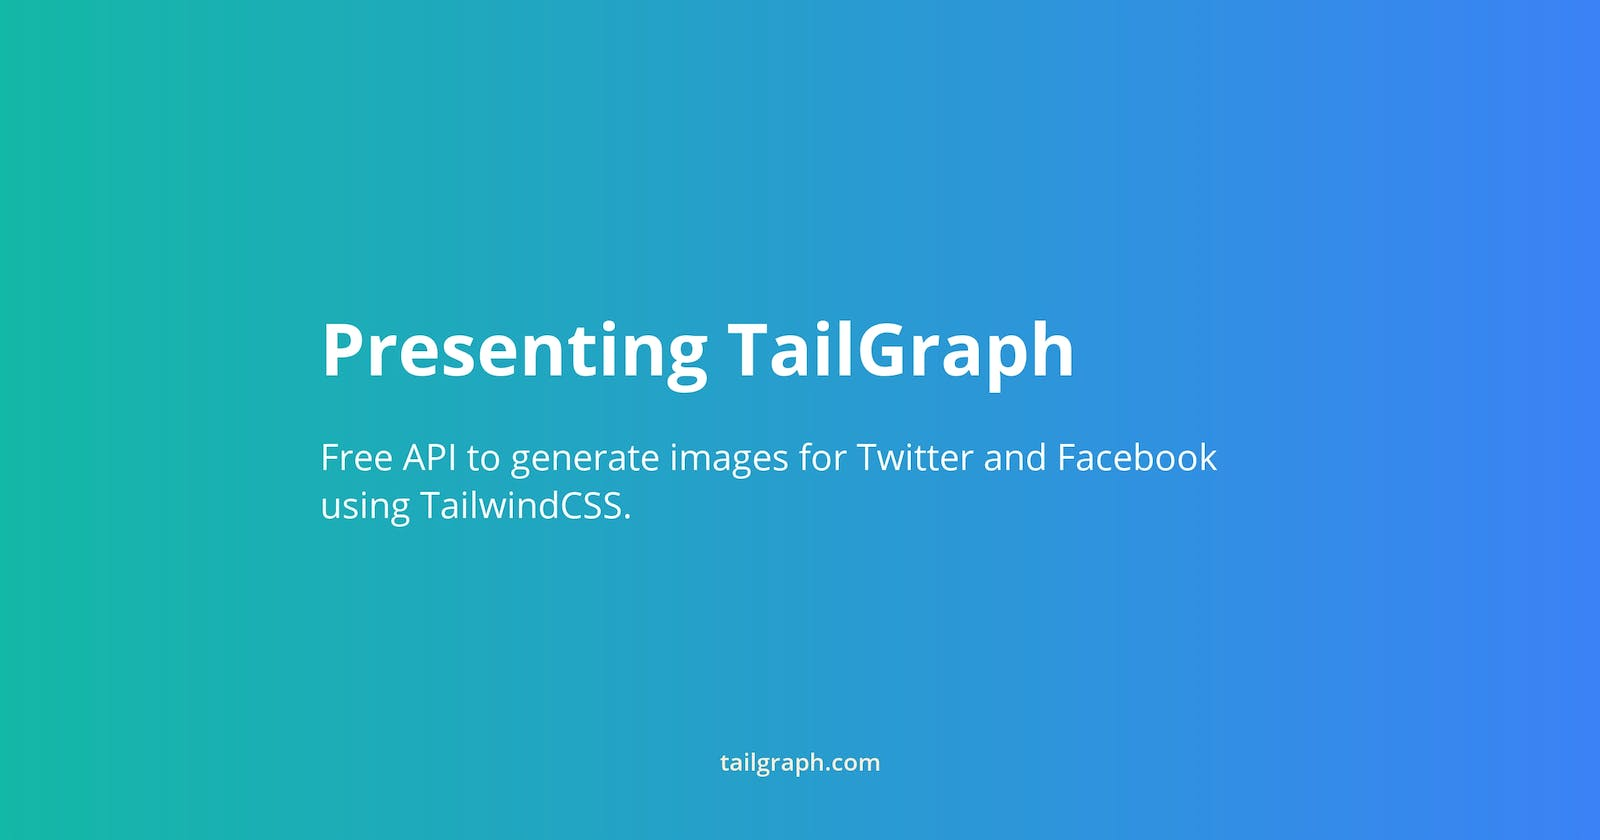 How I built TailGraph: a free API to generate OG images for Twitter and Facebook using TailwindCSS